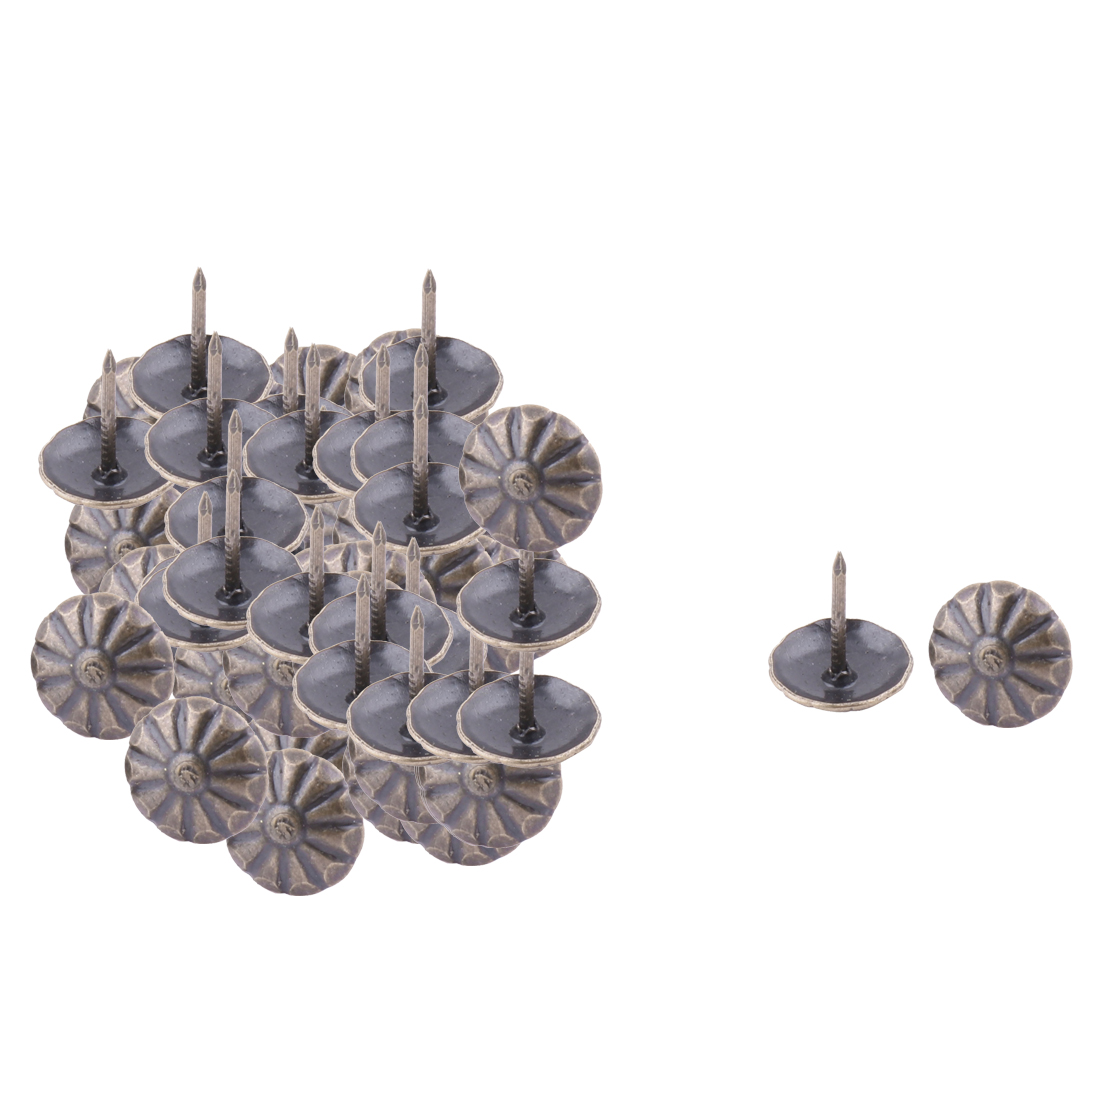 11mmx13mm Home Furniture Metal Round Pin Decorative Domed Nail Dark Gray 50pcs